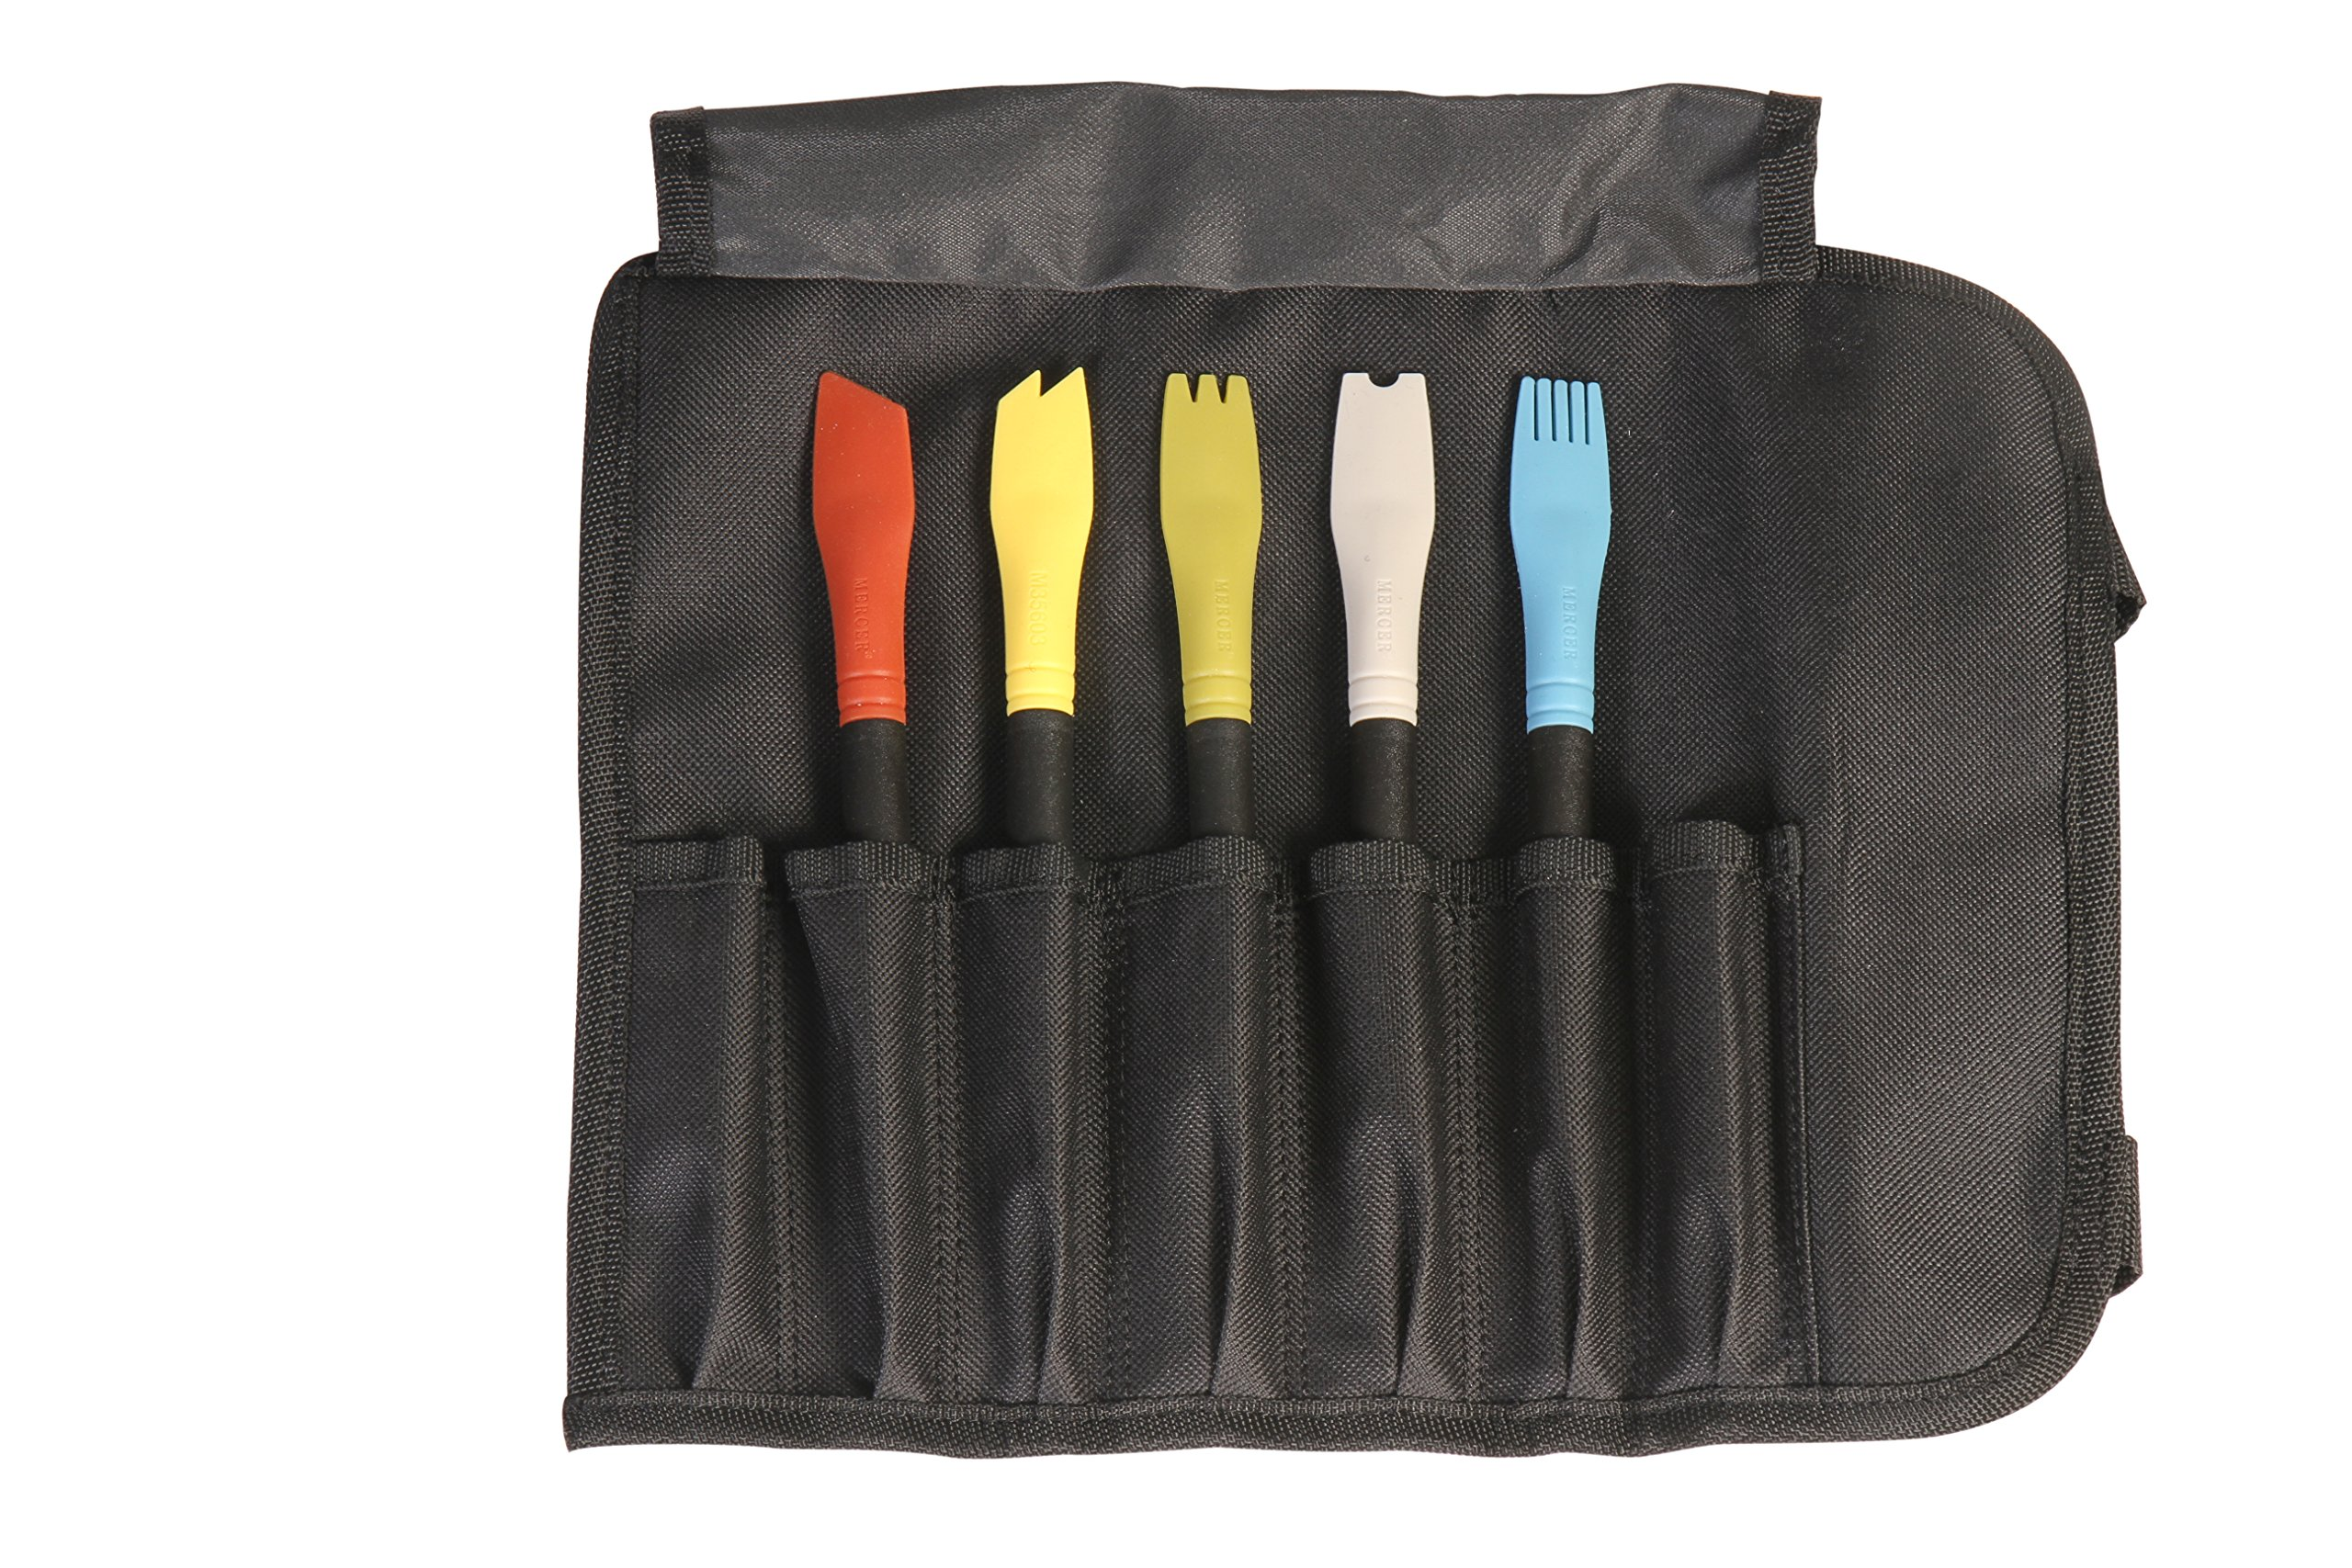 Mercer Culinary Silicone Plating Brush Set - 5 Brushes and a Carrying Case by Mercer Culinary